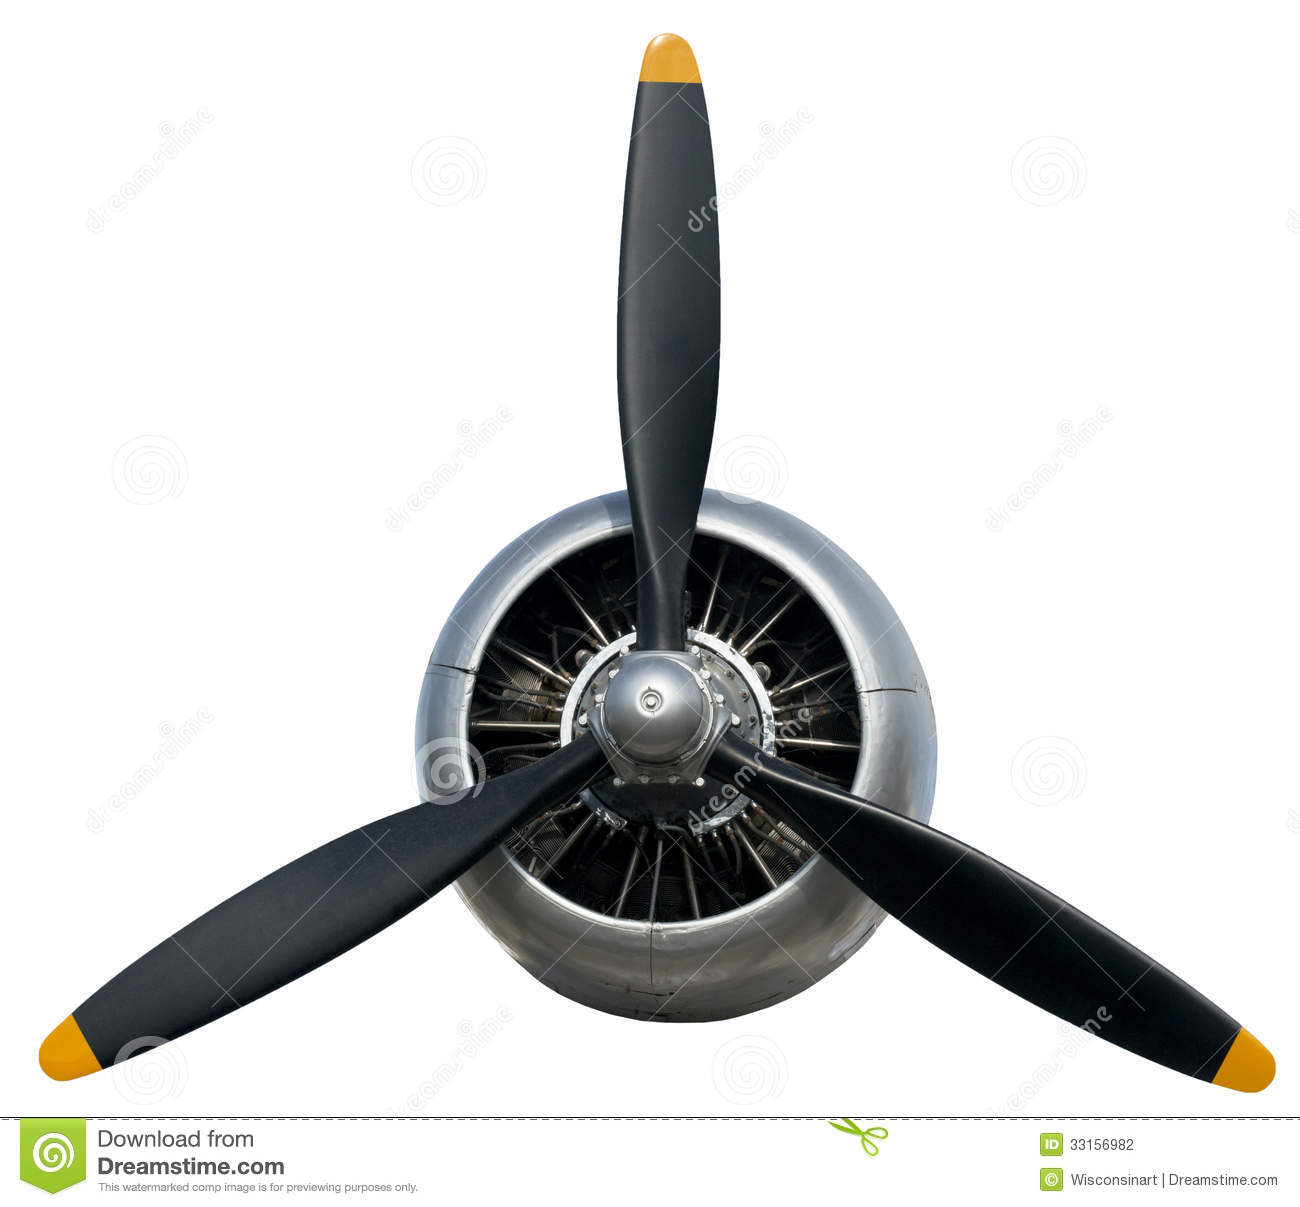 Airplane Propeller Isolated On White Image Can Be Used As A Concept